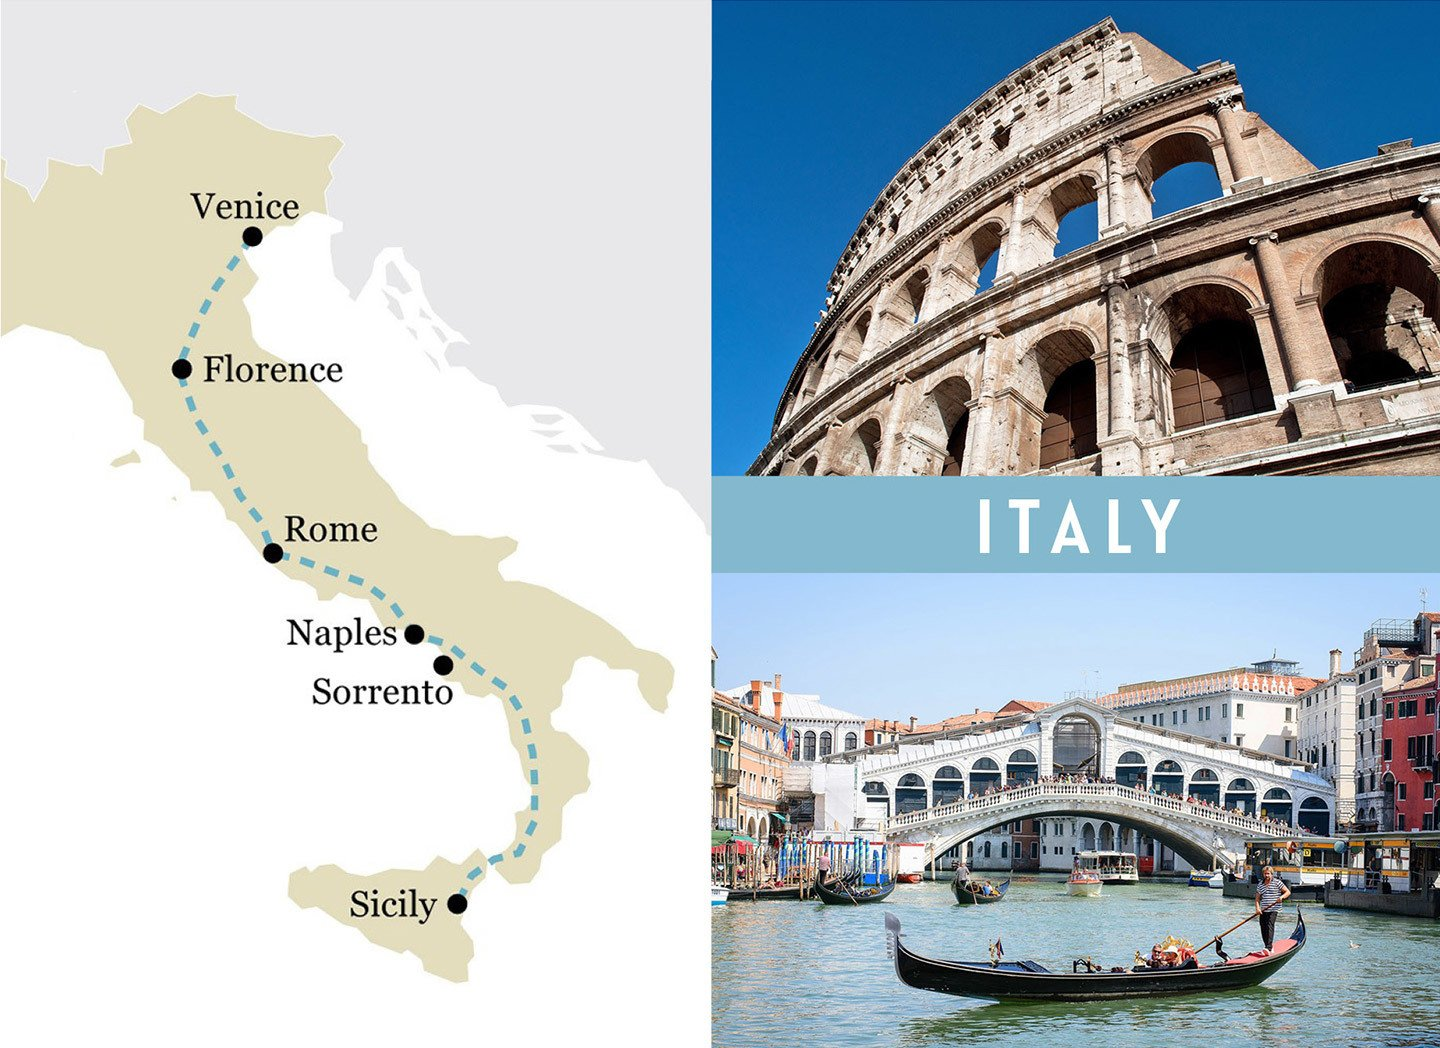 A one-week rail trip itinerary in Italy